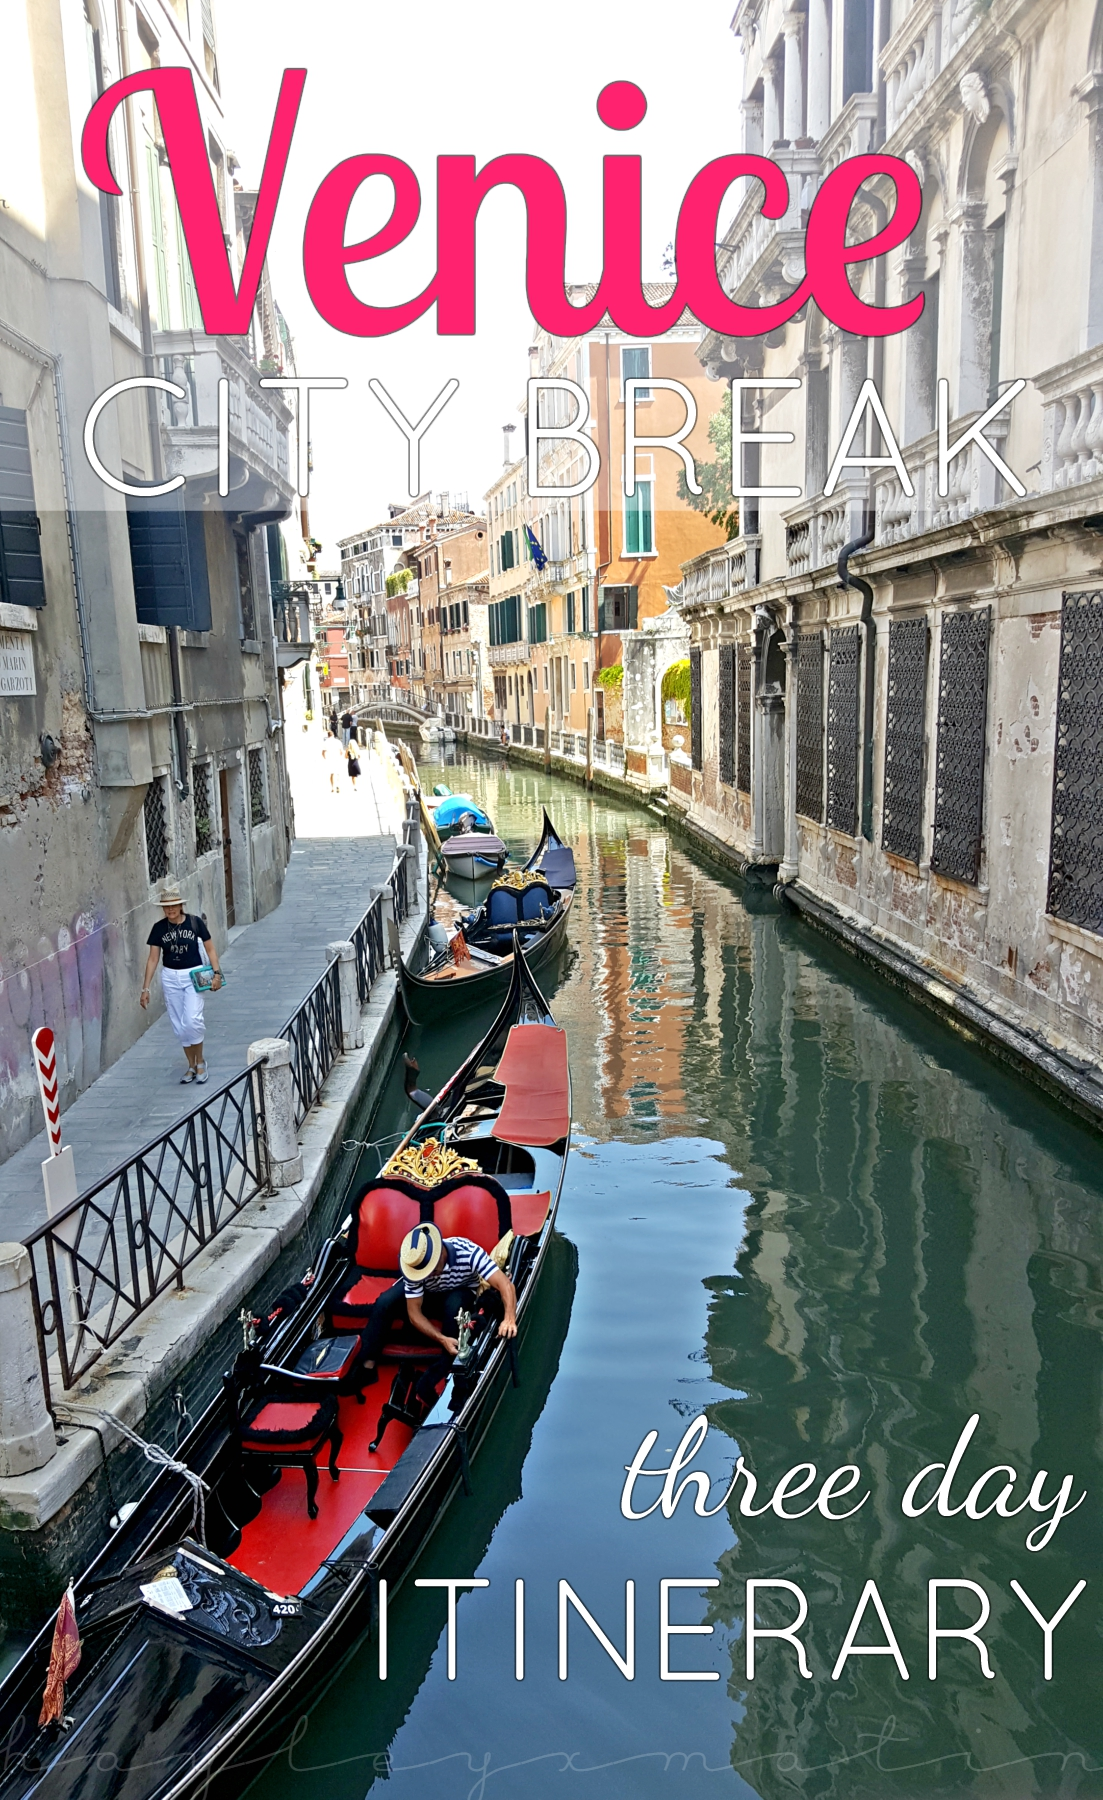 hayleyxmartin | Venice City Break | Three Day Itinerary